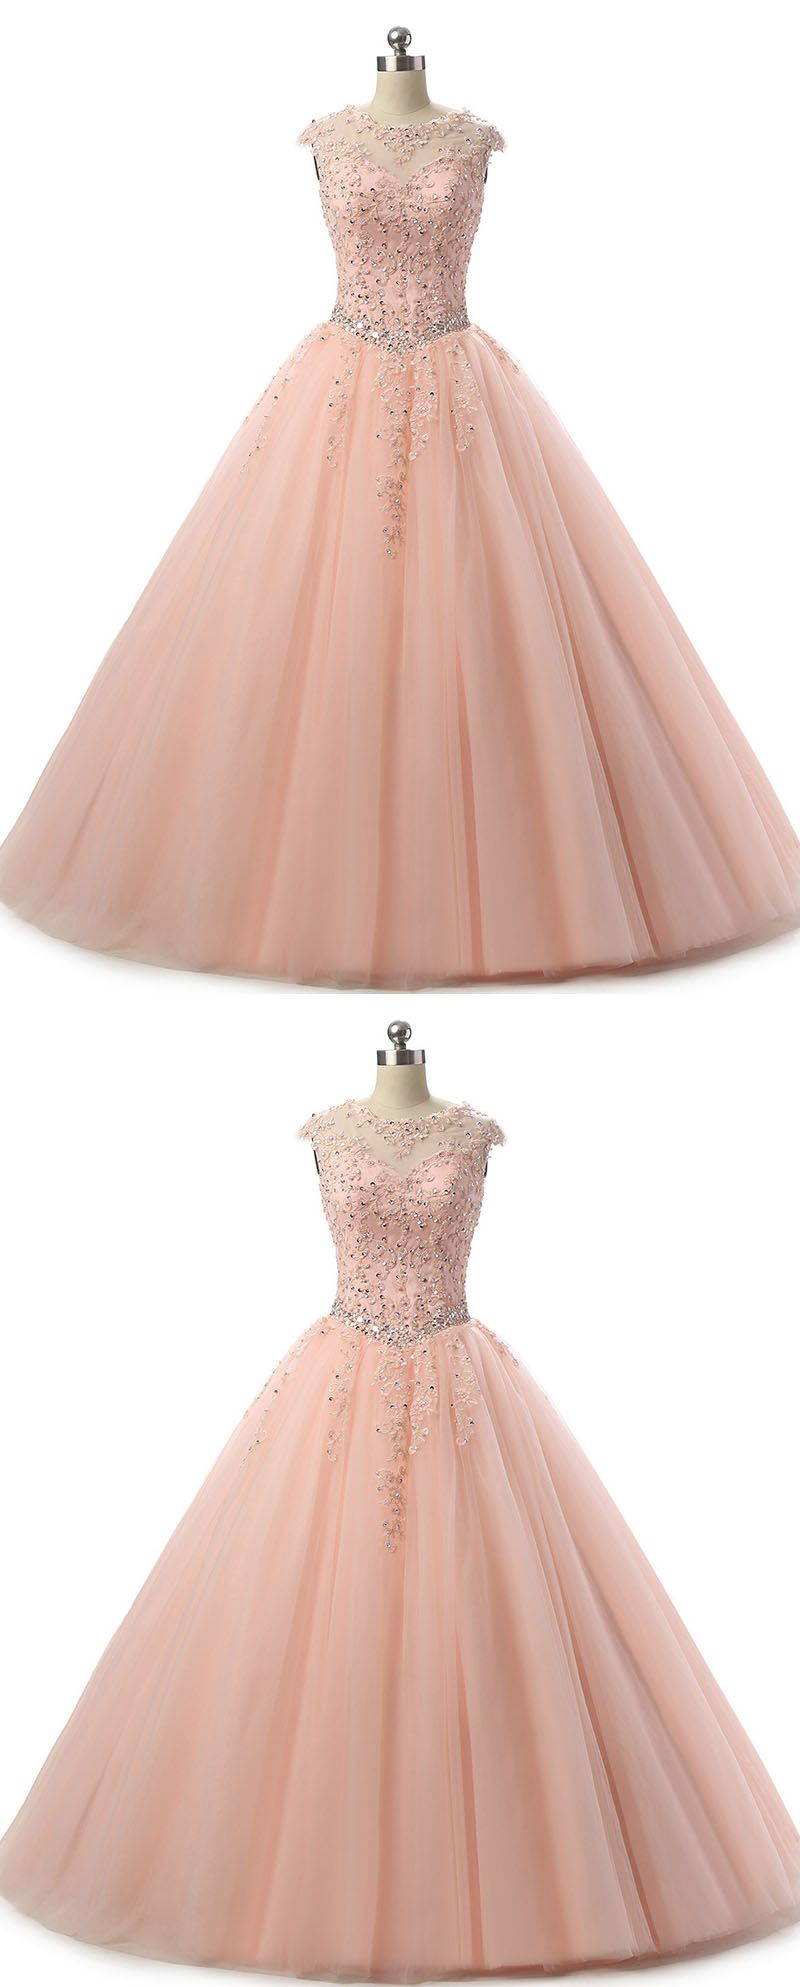 Siaoryne Pl6500 Best Rose Gold Prom Dress Lace Ball Gown Quinceaneras For Girls Sweet Sixteen Dresses Sweet Sixteen Dresses Ball Gowns Rose Gold Prom Dress